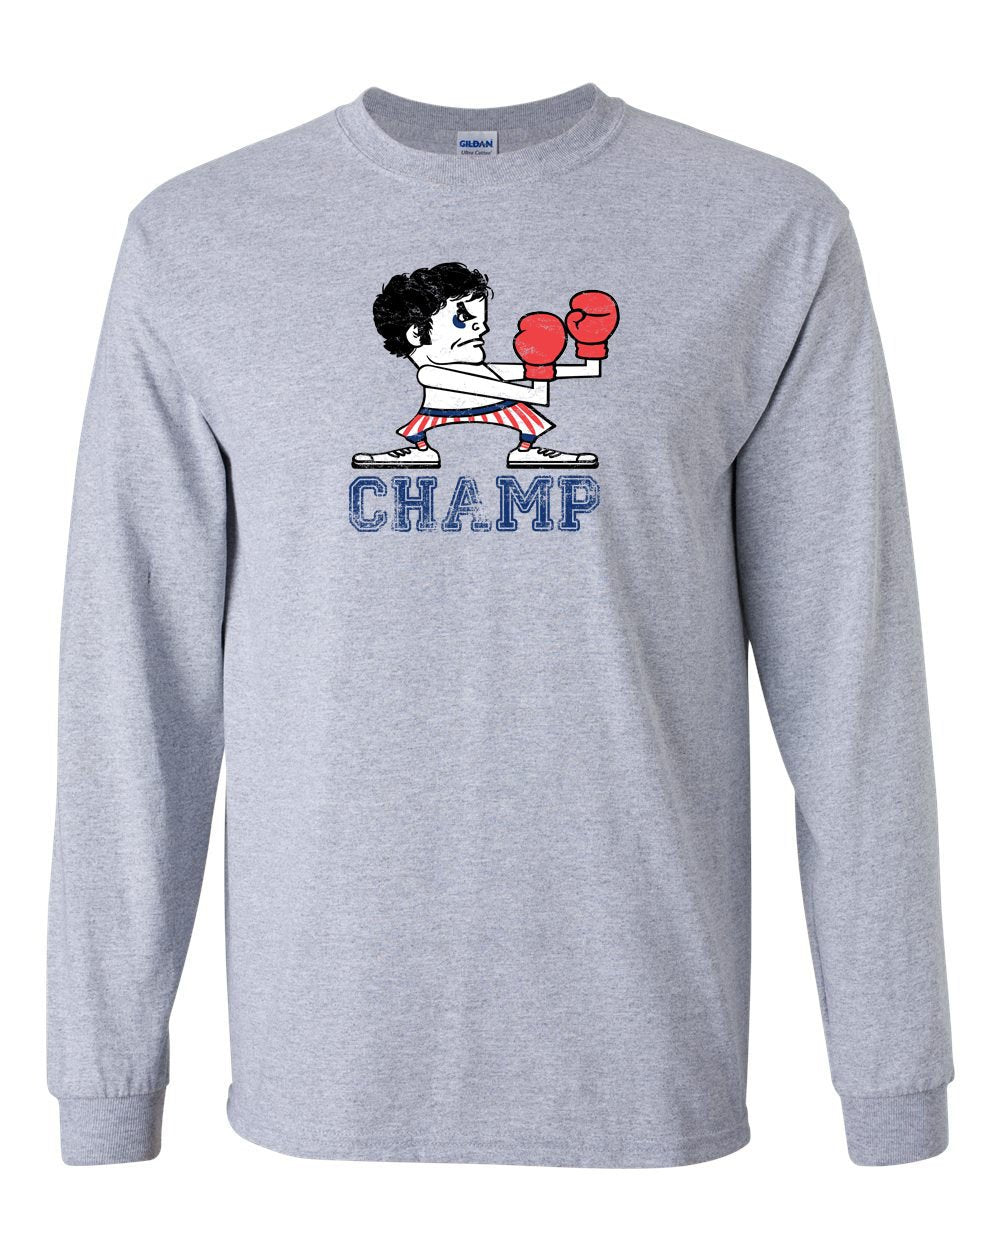 Champ MENS Long Sleeve Heavy Cotton T-Shirt